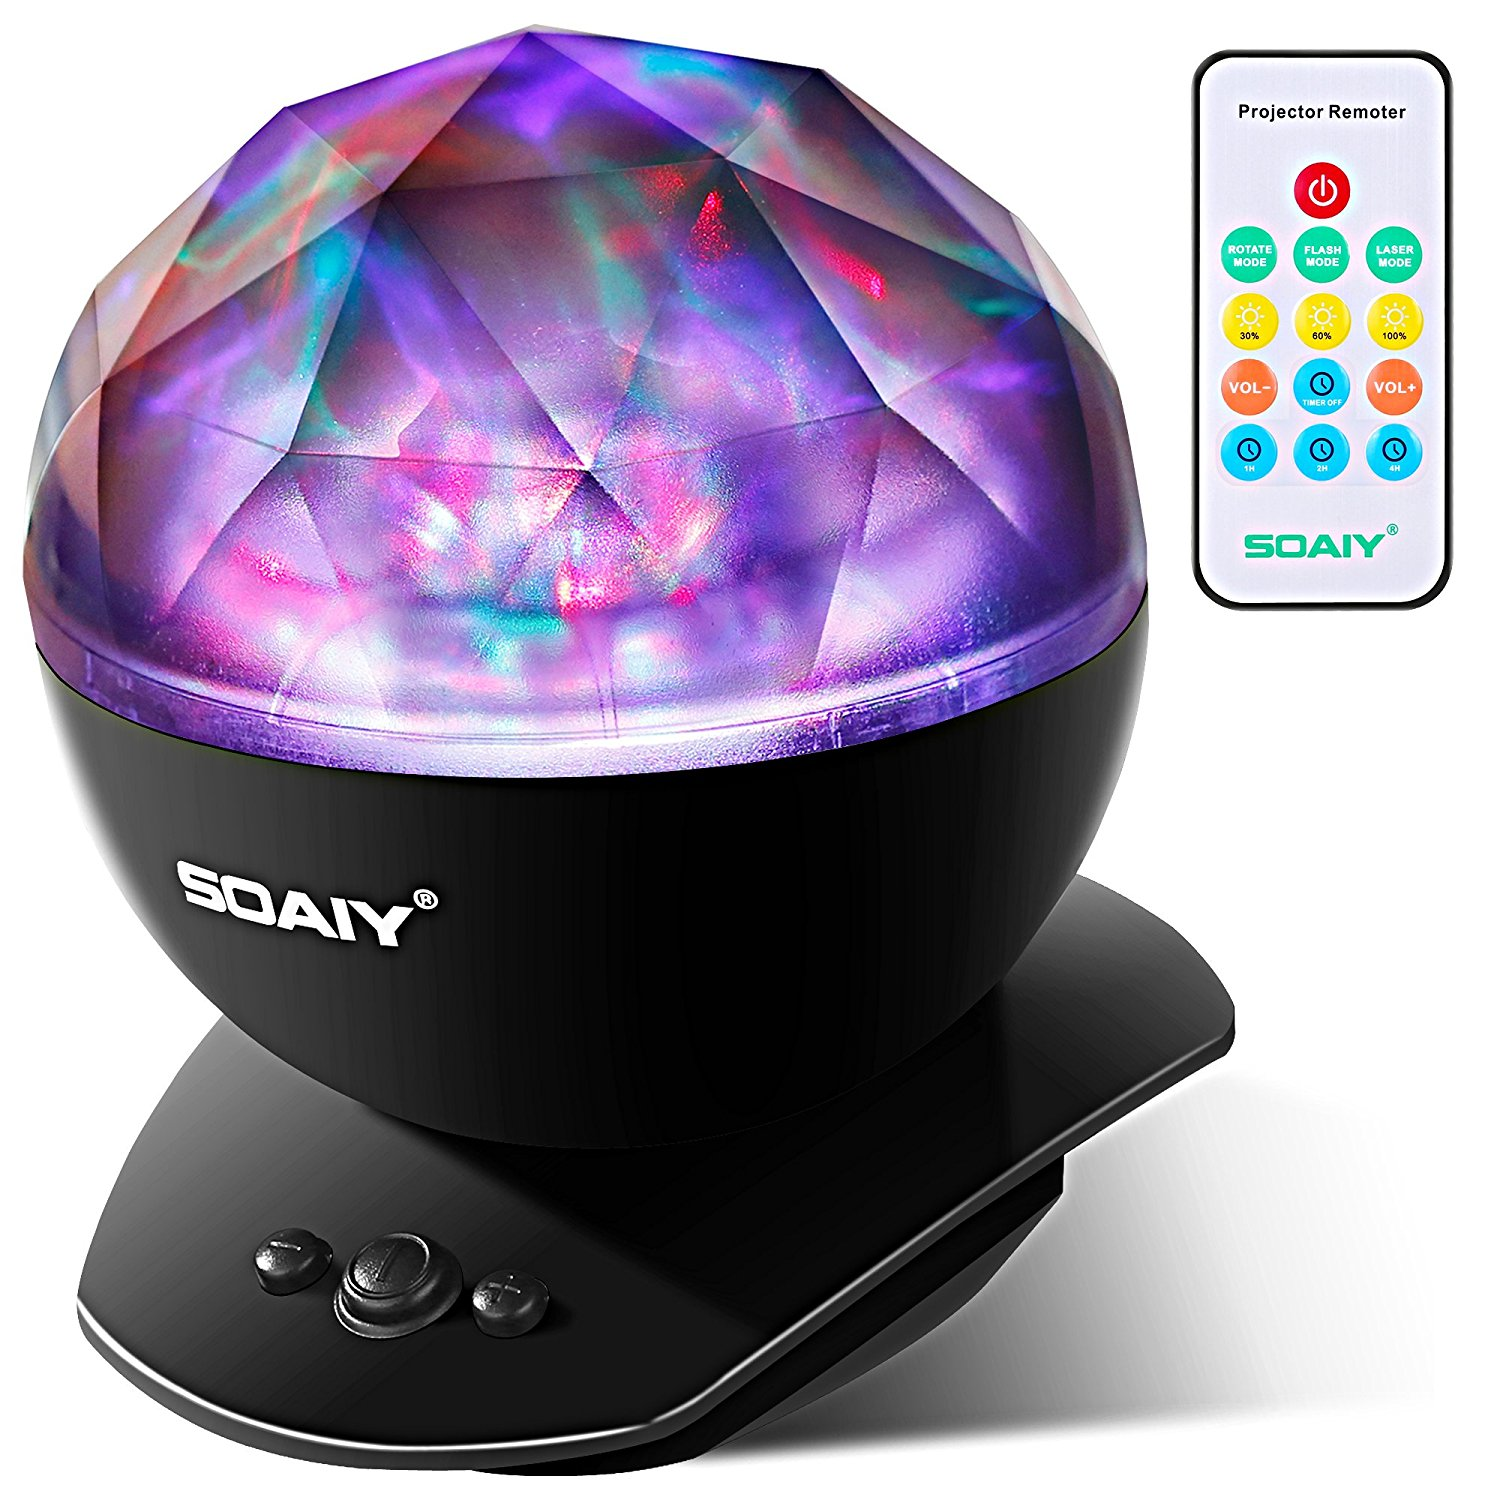 SOAIY Remote Control Ocean Wave Projector Aurora Color Changing LED Night Light Lamp with Built-in Bluetooth... by Soaiy